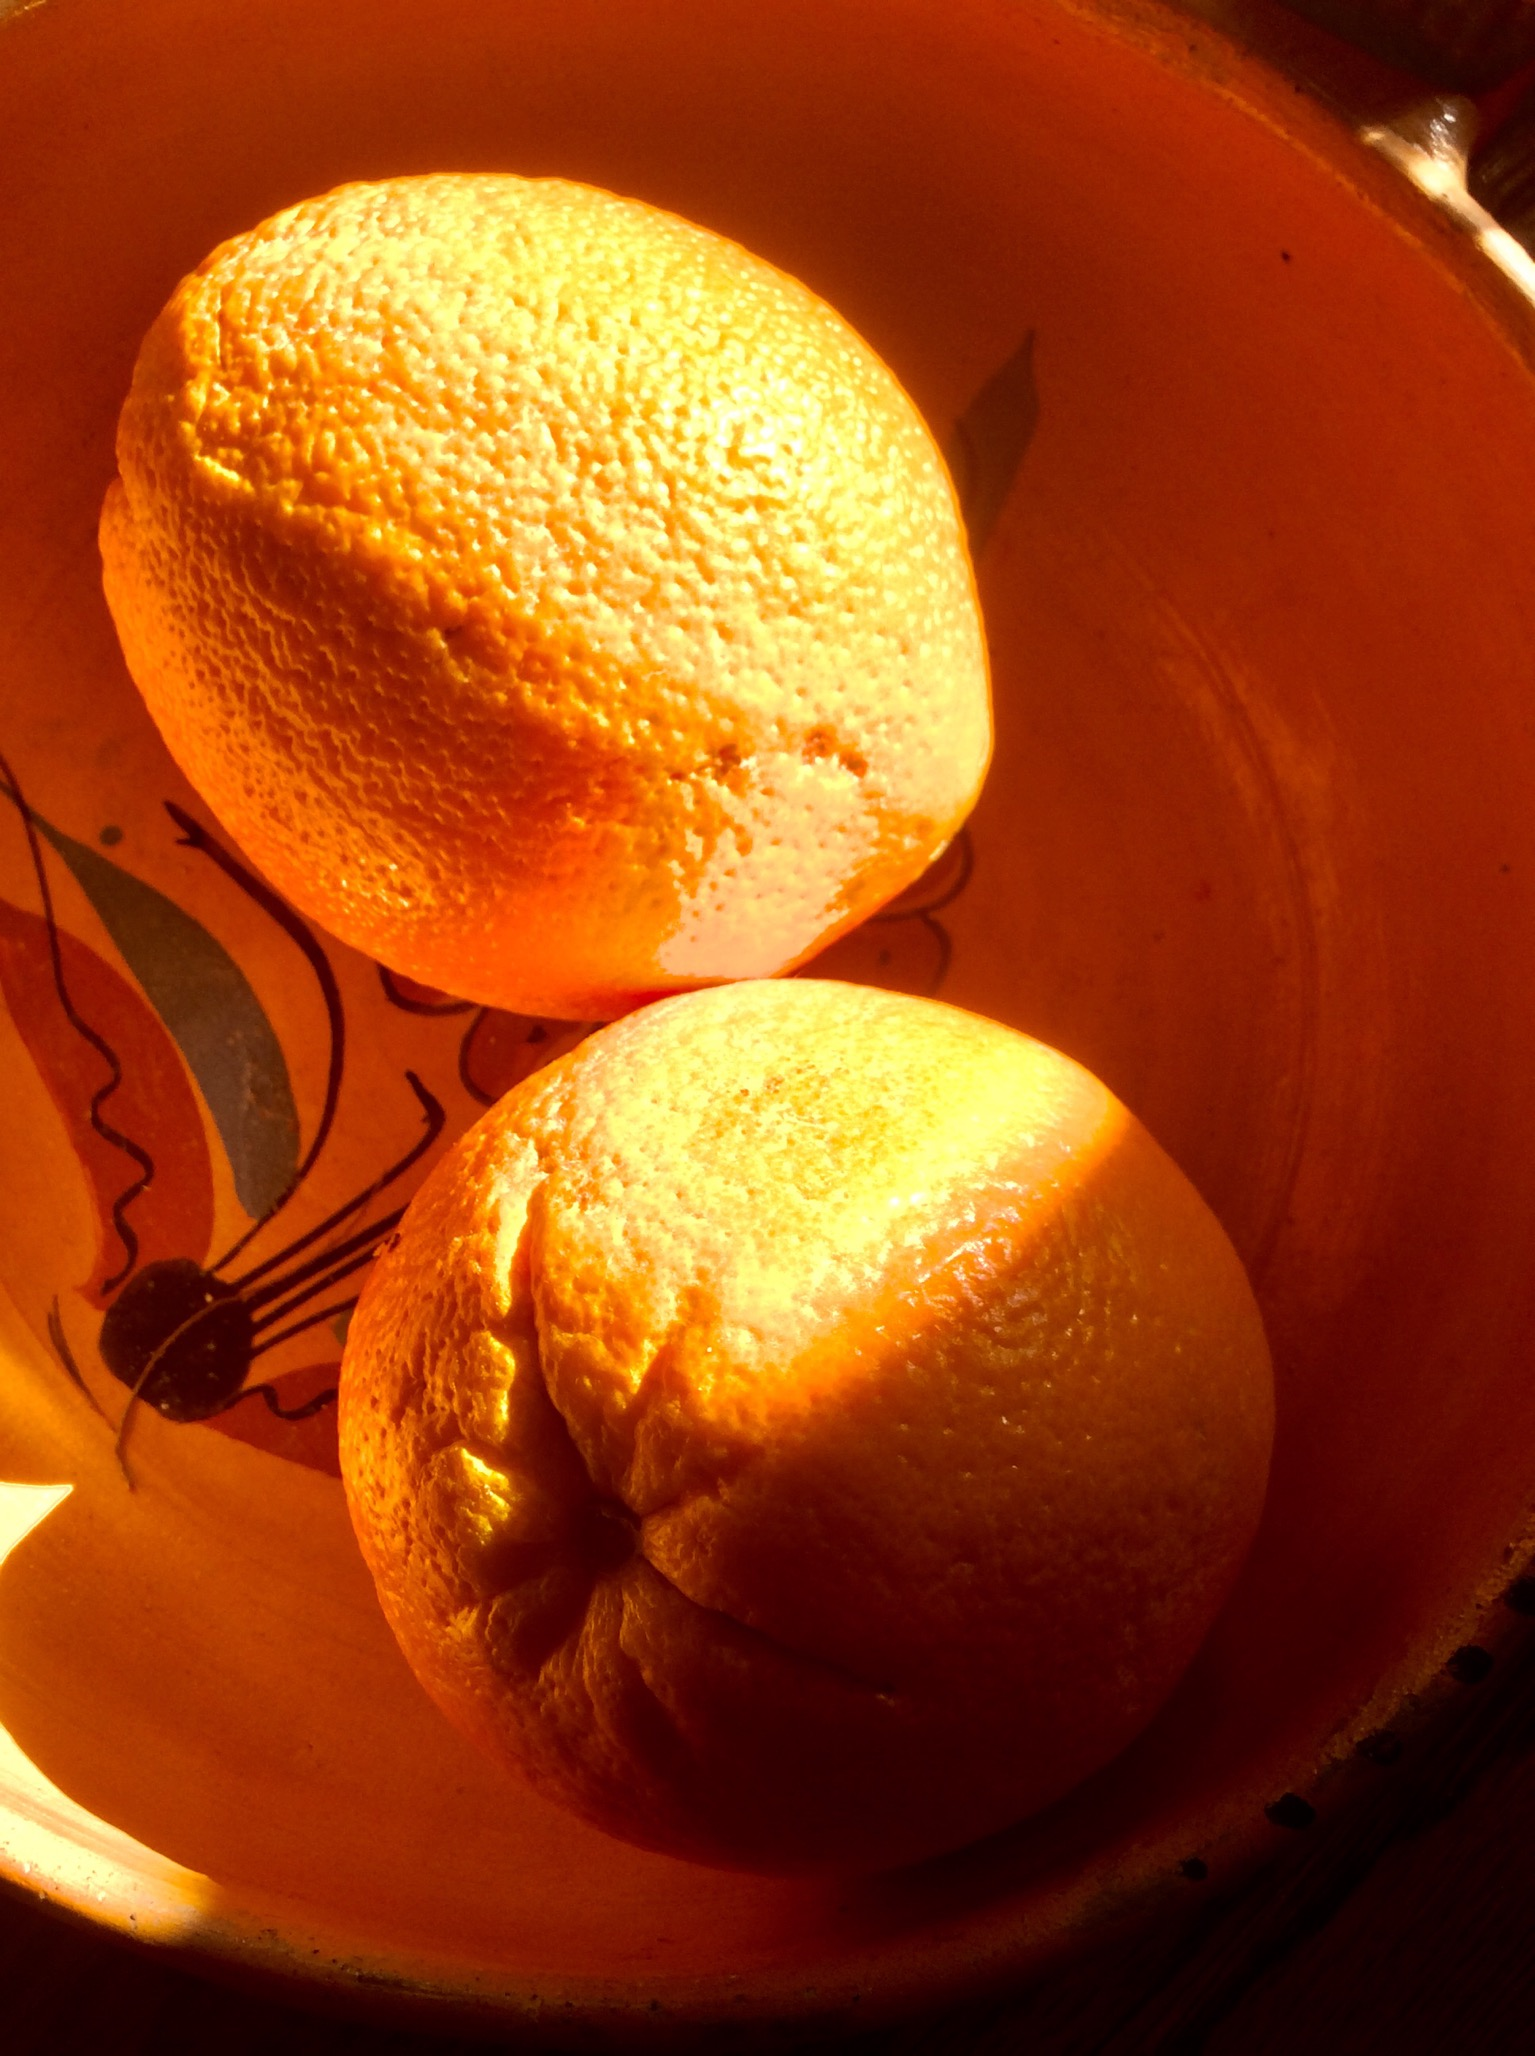 Two large navel oranges